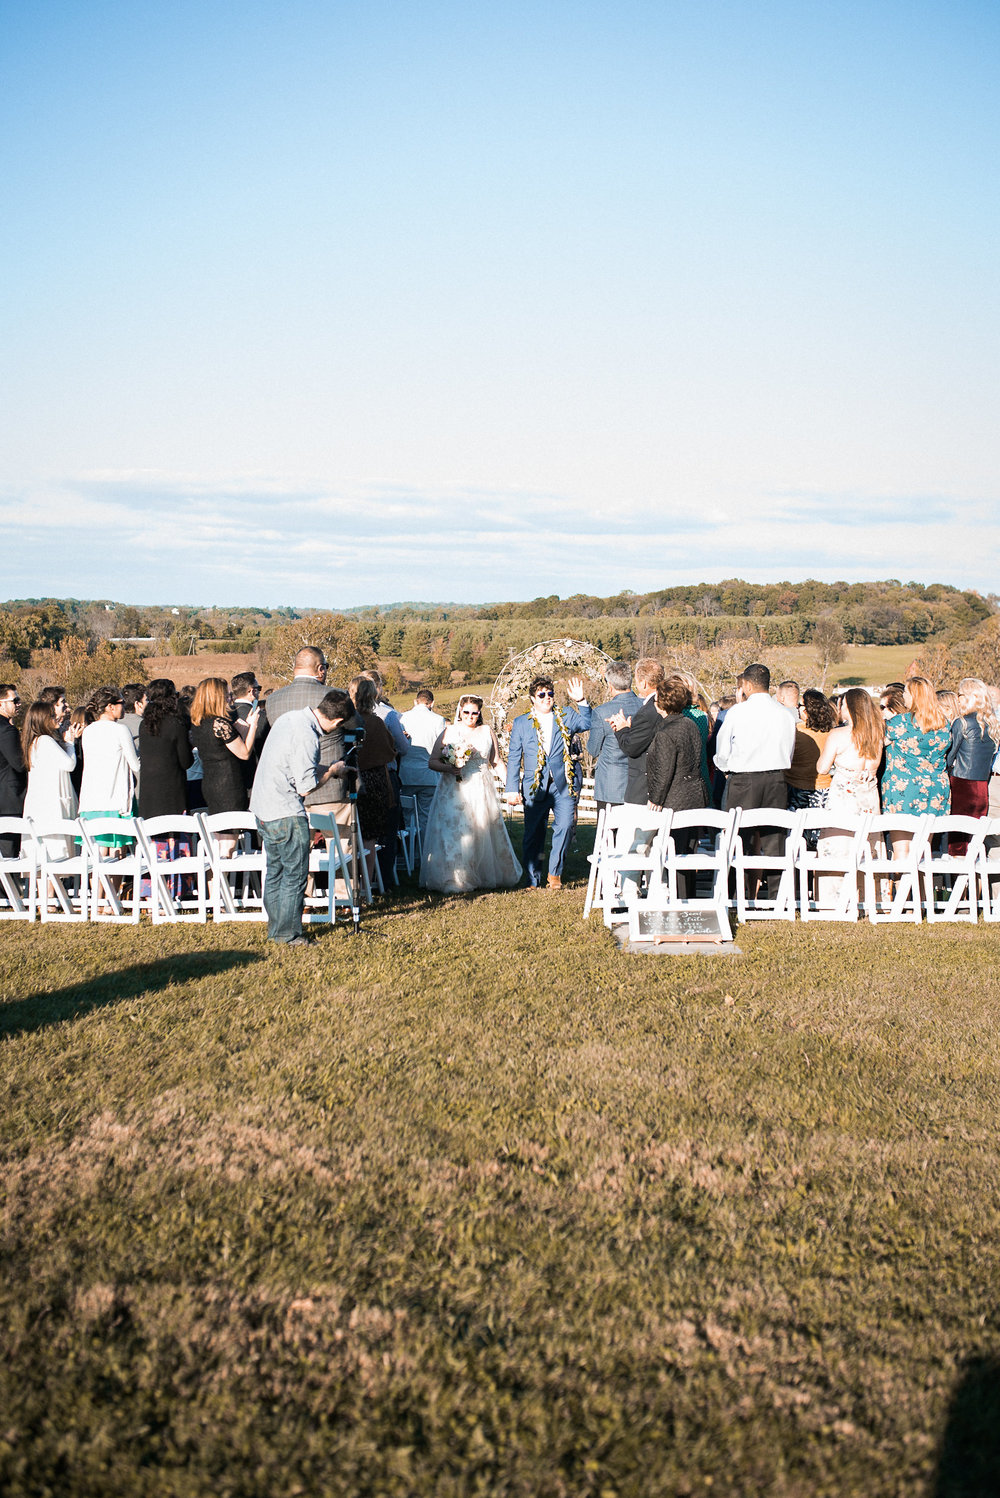 Guests at wedding ceremony as couple leaves